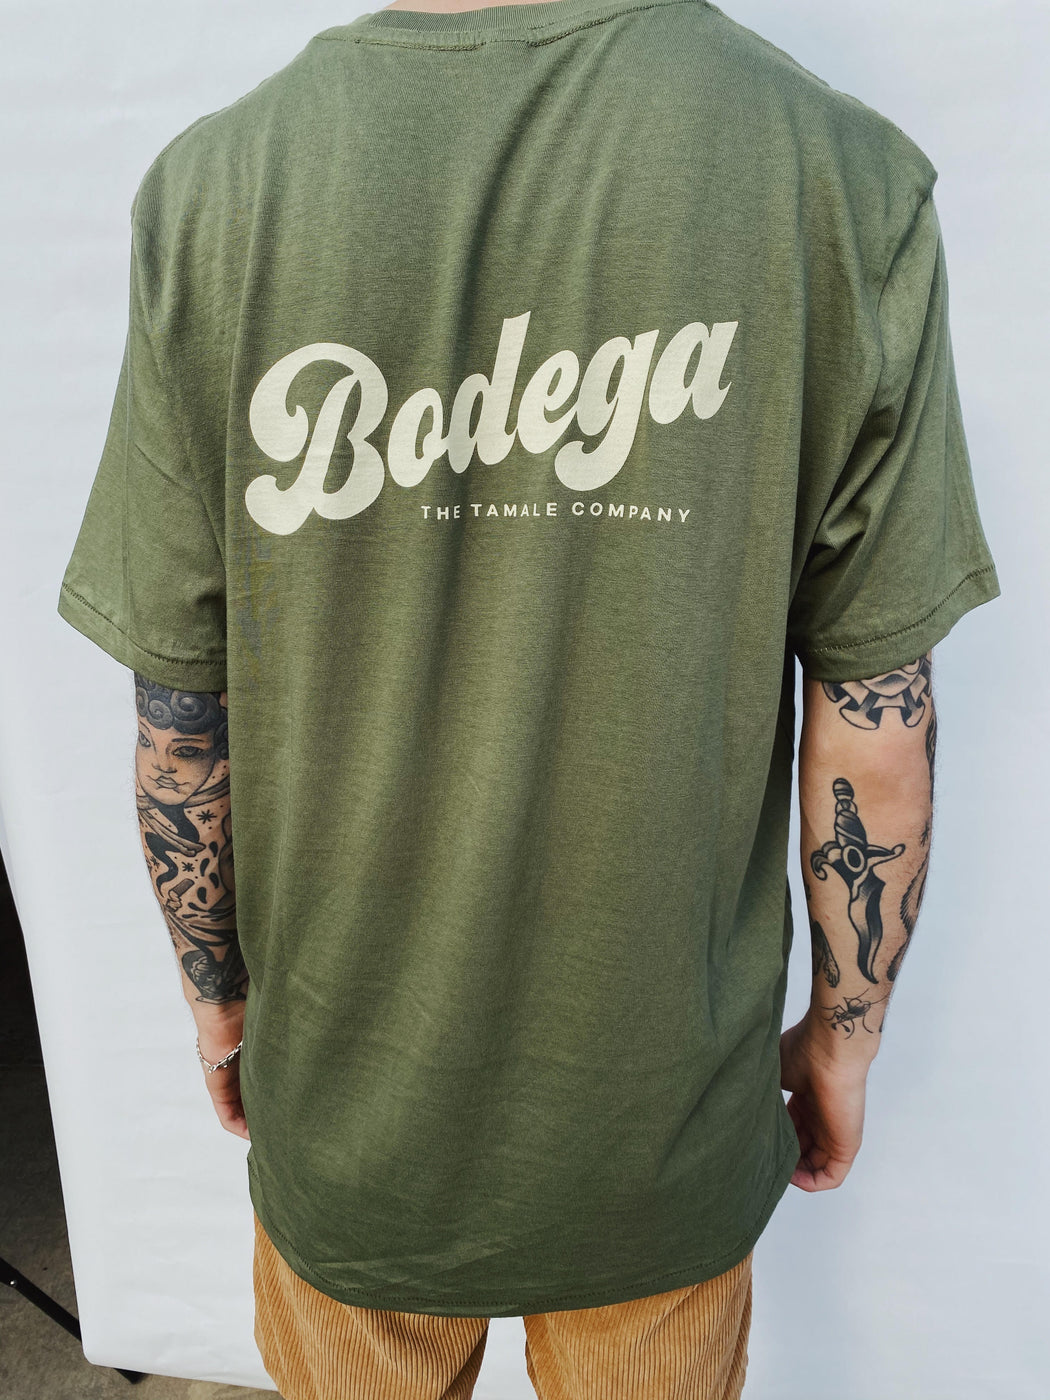 Vintage Bodega Tee - The Tamale Company